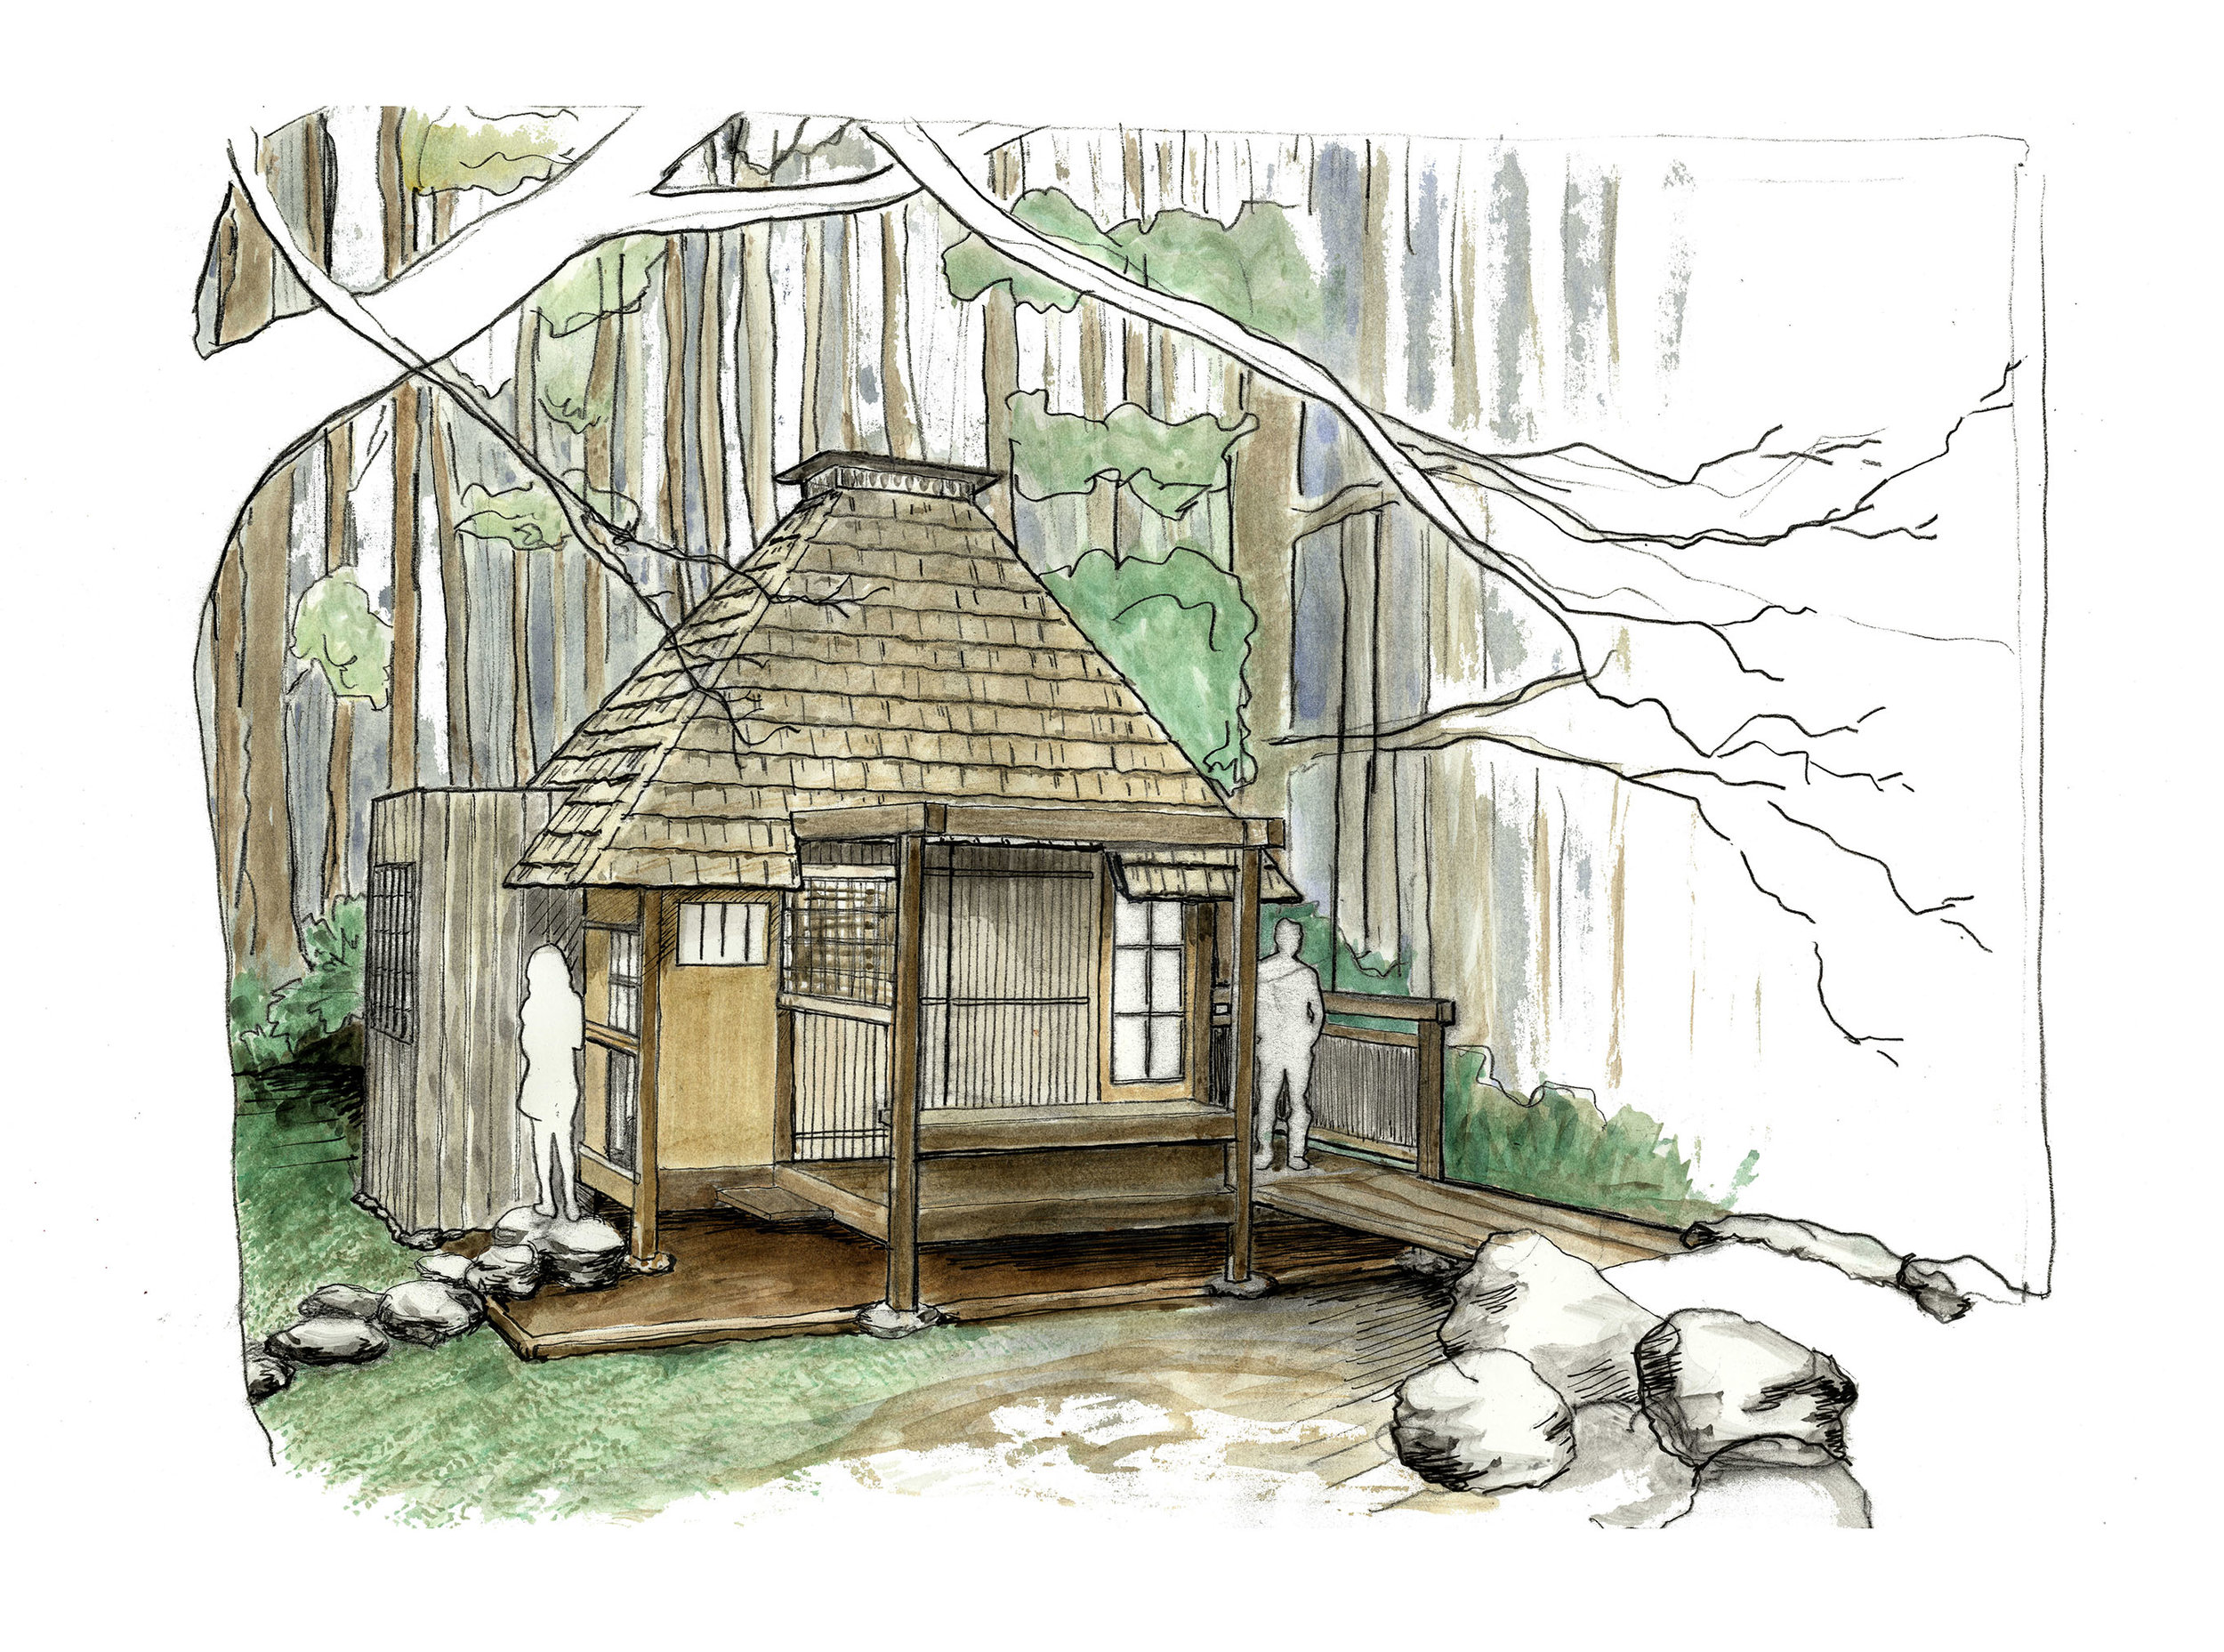 Traditional Japanese Tea-House Design. This was an immersive student project that included woodworking and studying Traditional Japanese Architecture and the Tea ceremony.